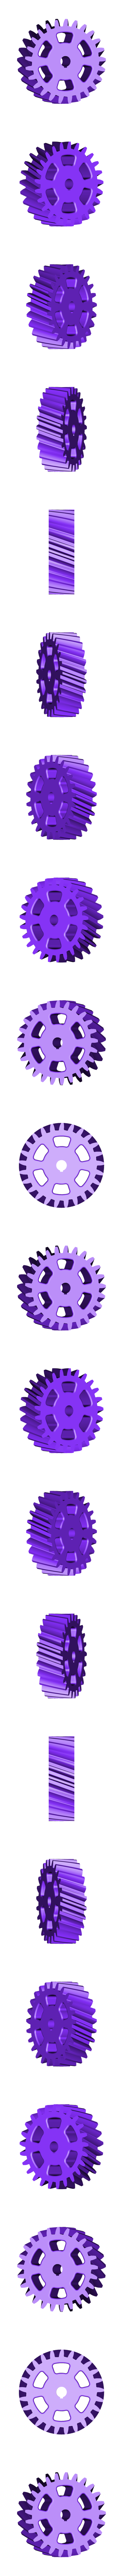 helical-gear.stl Download free STL file Helical Gear • 3D print design, O3D